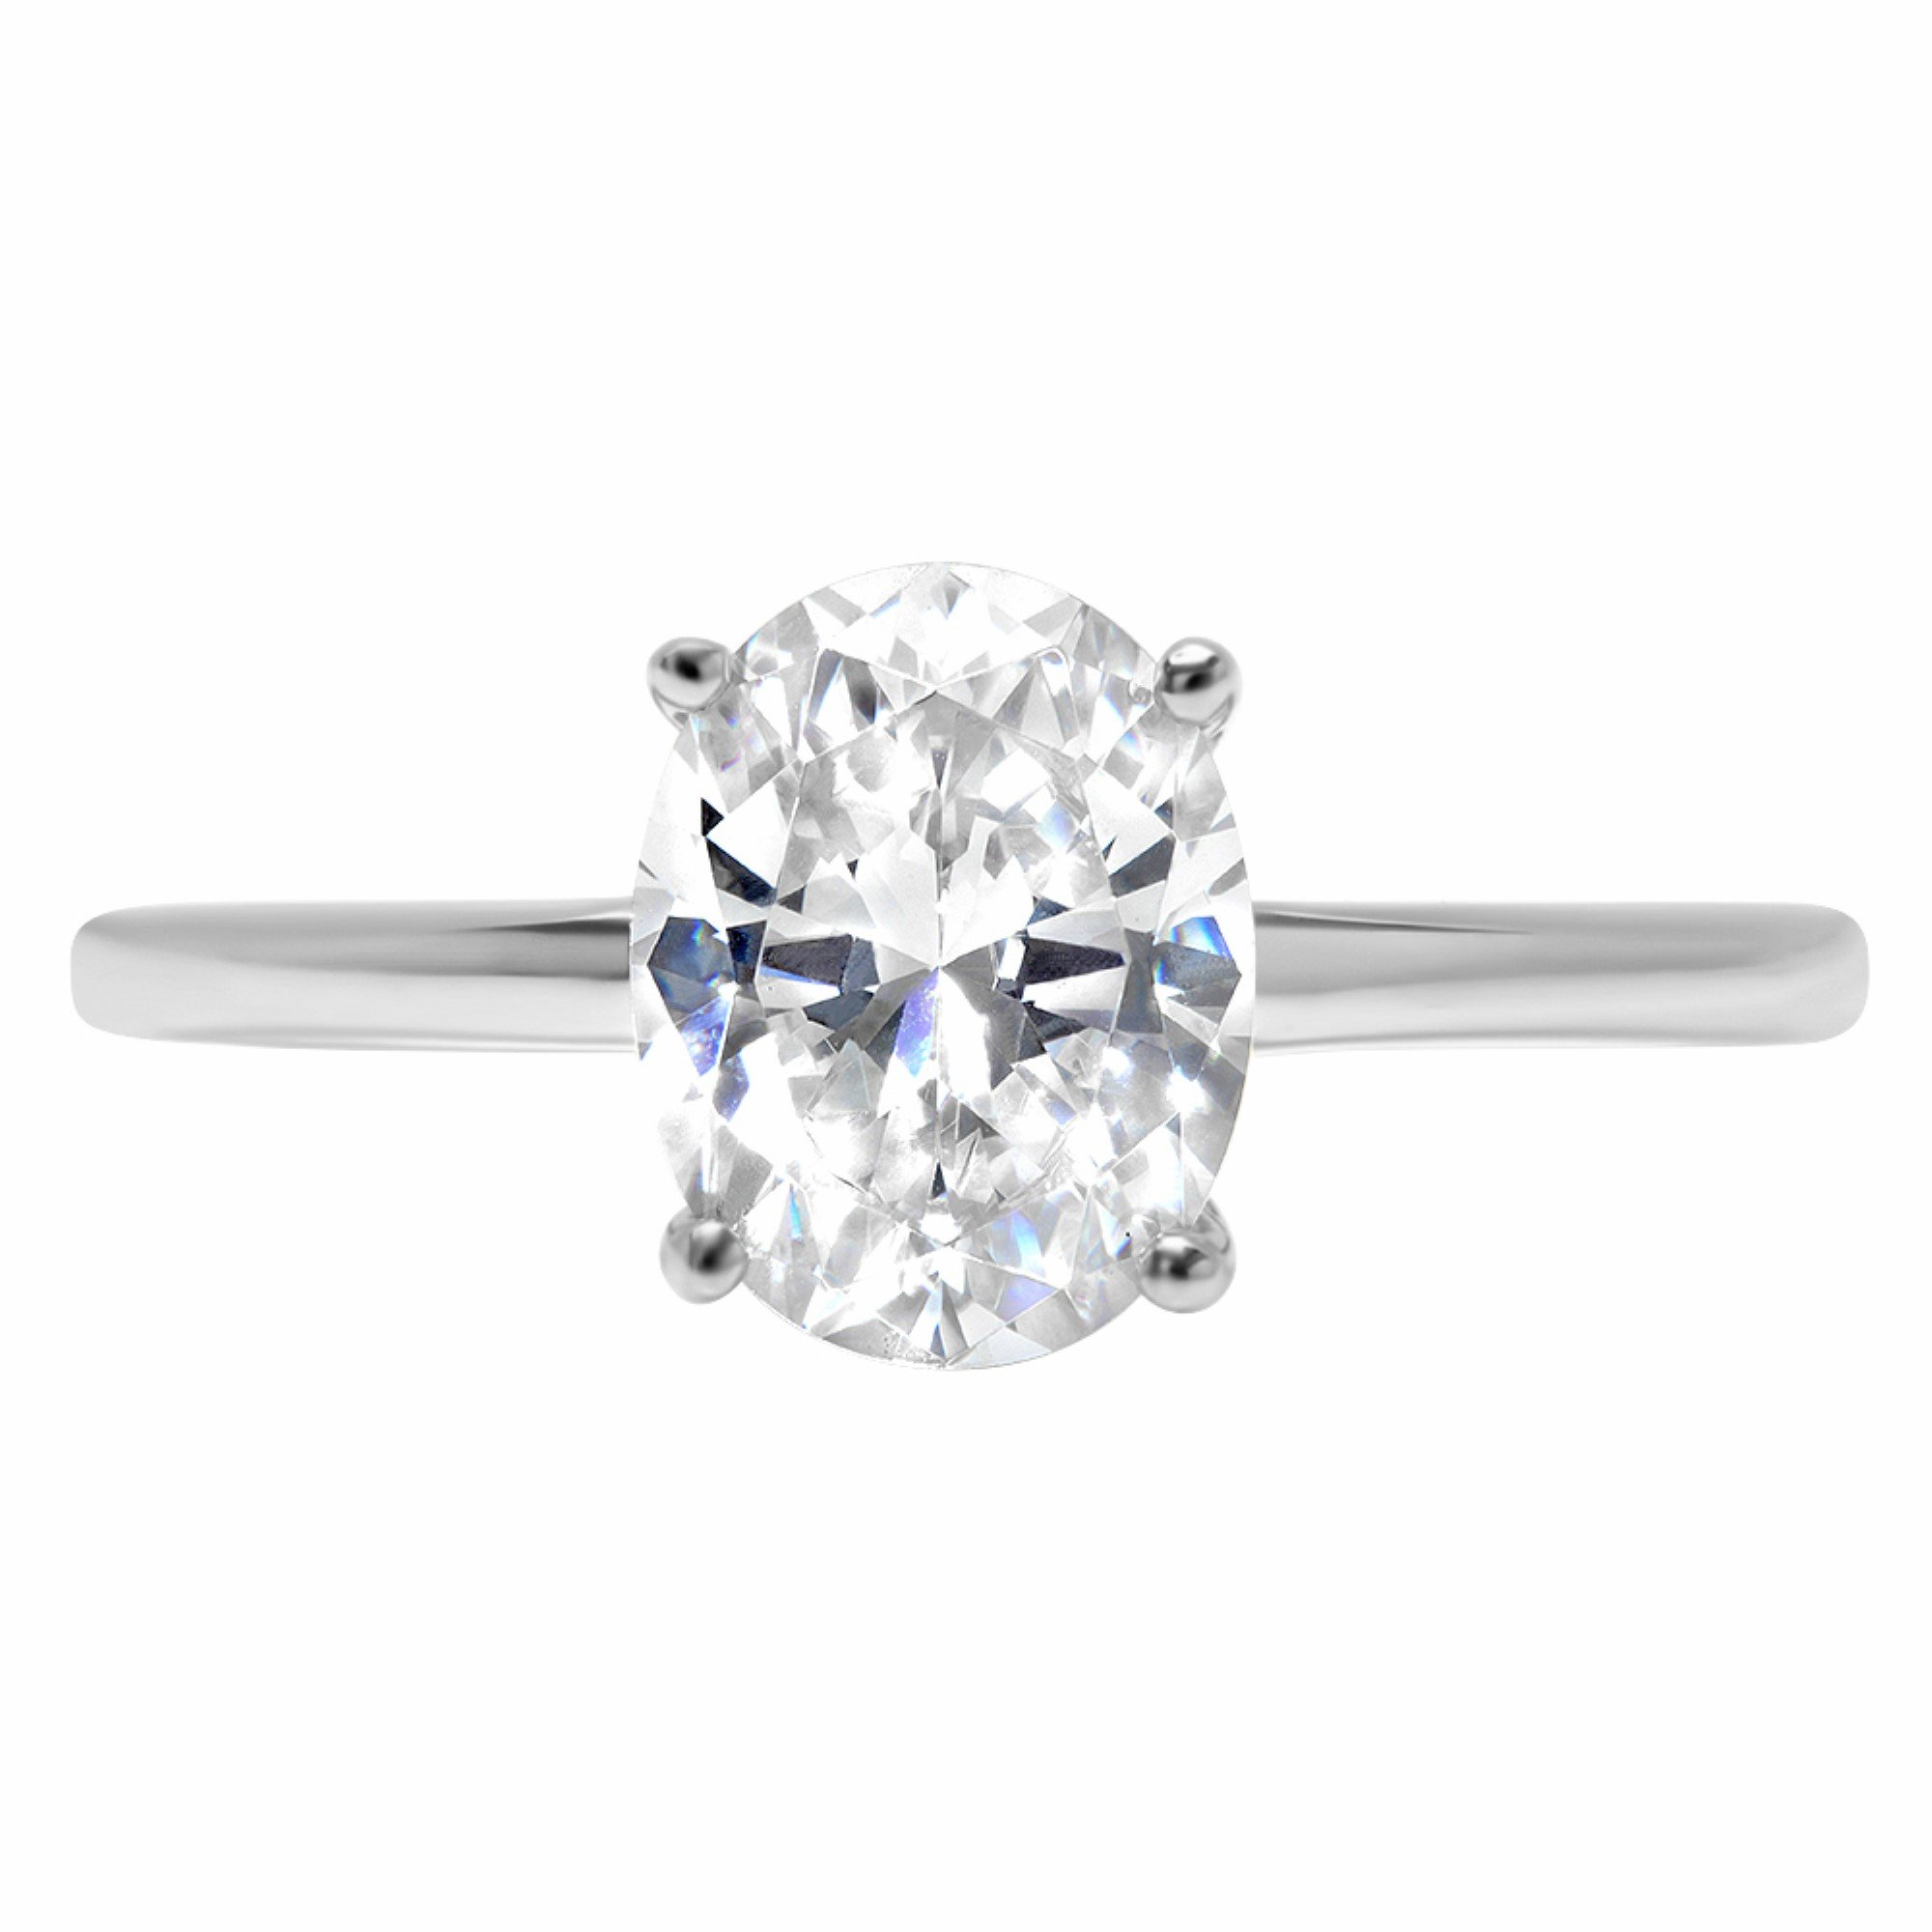 Oval Brilliant Cut Classic Solitaire Designer Wedding Bridal Statement Anniversary Engagement Promise Ring Solid 14k White Gold, 2.7ct, 7.5